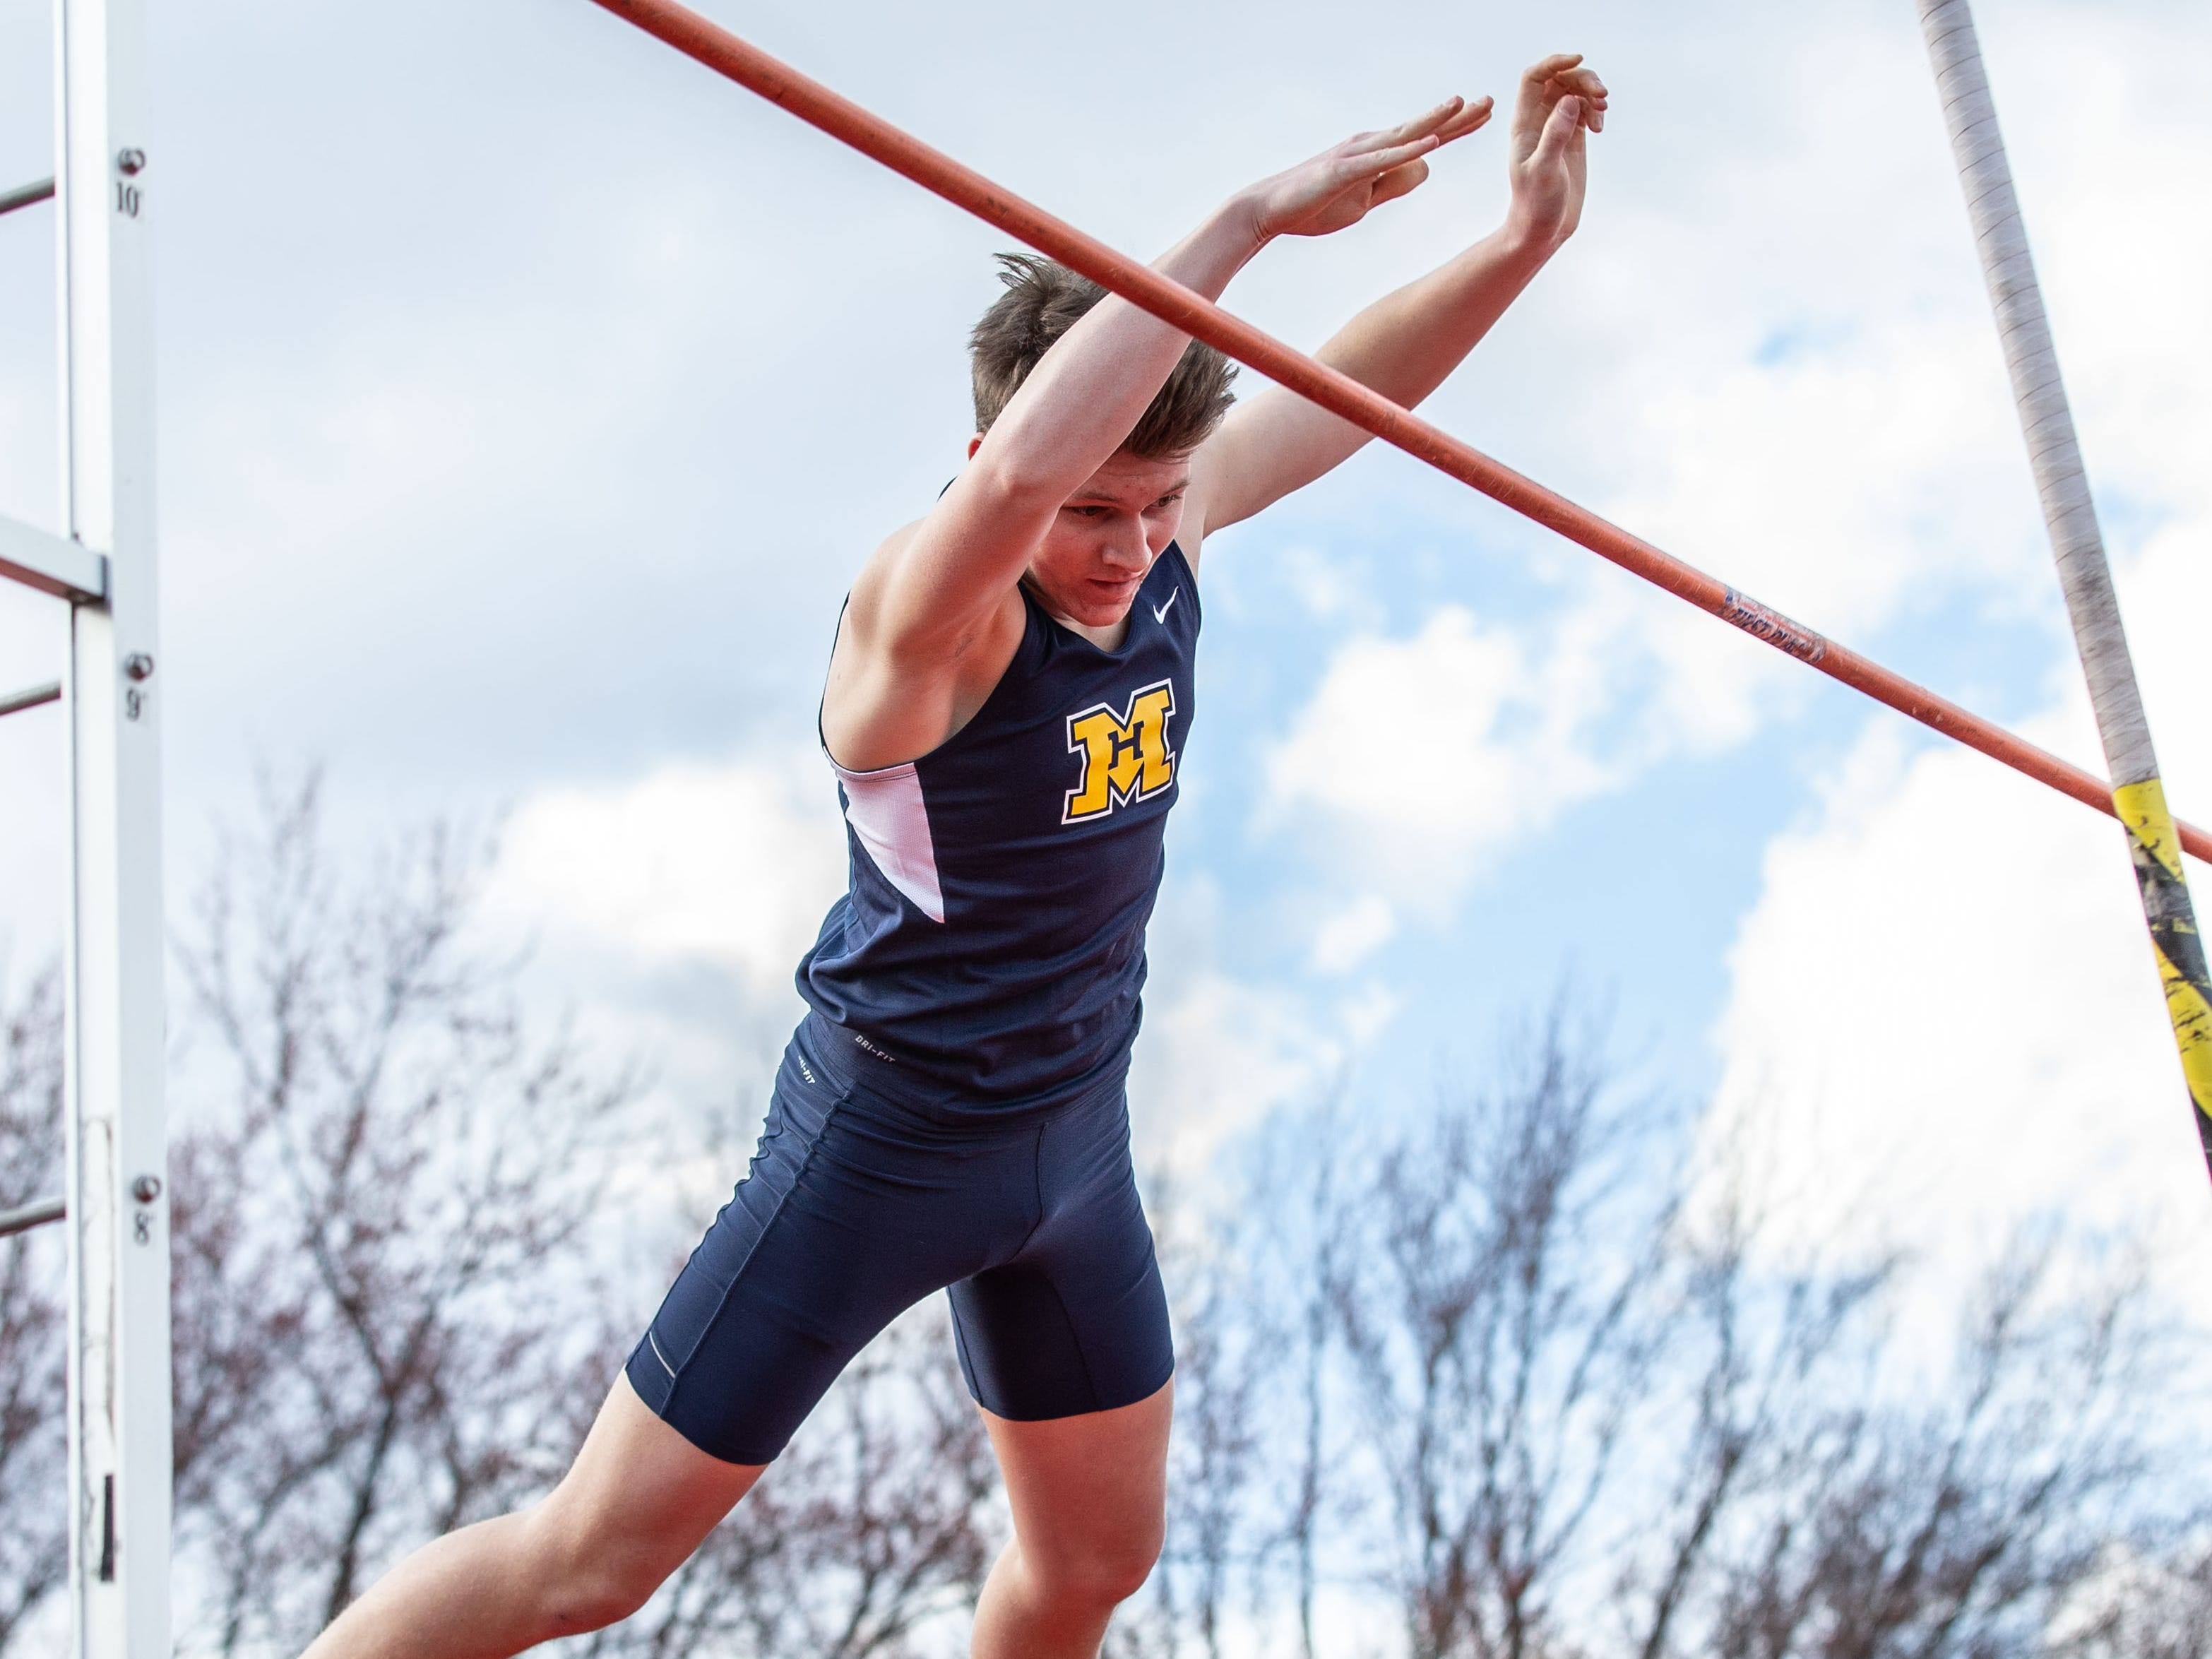 Marquette's Gabe Bohlmann competes in the pole vault during the Mike Gain 50th Annual Spartan Invitational at Brookfield East on Tuesday, April 9, 2019.